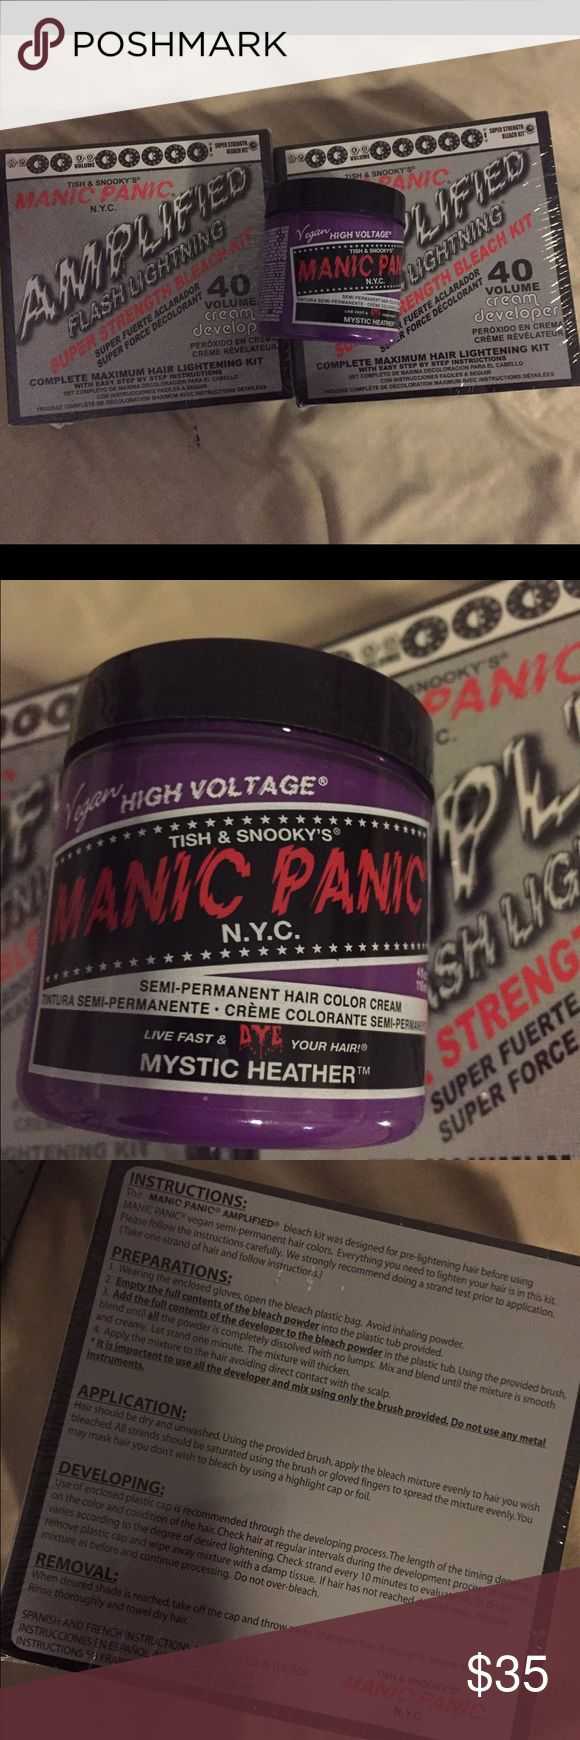 Manic Panic Mystic Heather & 2 Bleach Kit 40 Manic Panic Mystic Heather & 2 Bleach Kit 40 purple hair dye all are brand new and sealed. Mystic Heather is semi permanent Makeup